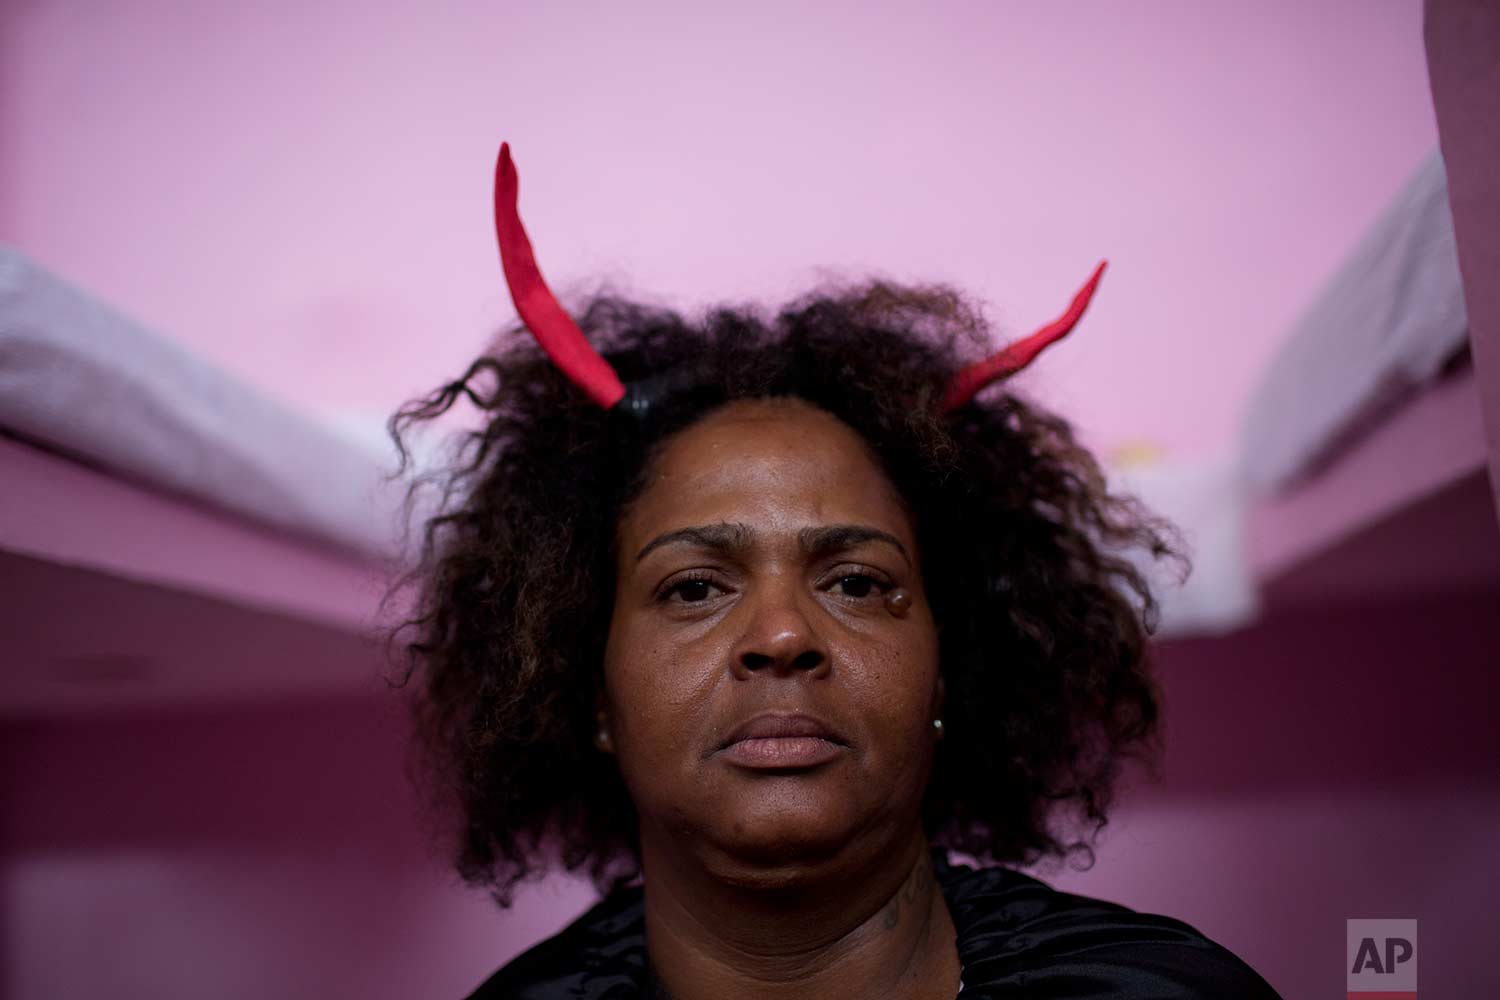 An inmate wears red horns as part of her costume representing evil and temptation, during the 8th annual Christmas event at the Nelson Hungria Prison, in Rio de Janeiro, Brazil, Tuesday, Dec. 12, 2017. (AP Photo/Silvia Izquierdo)